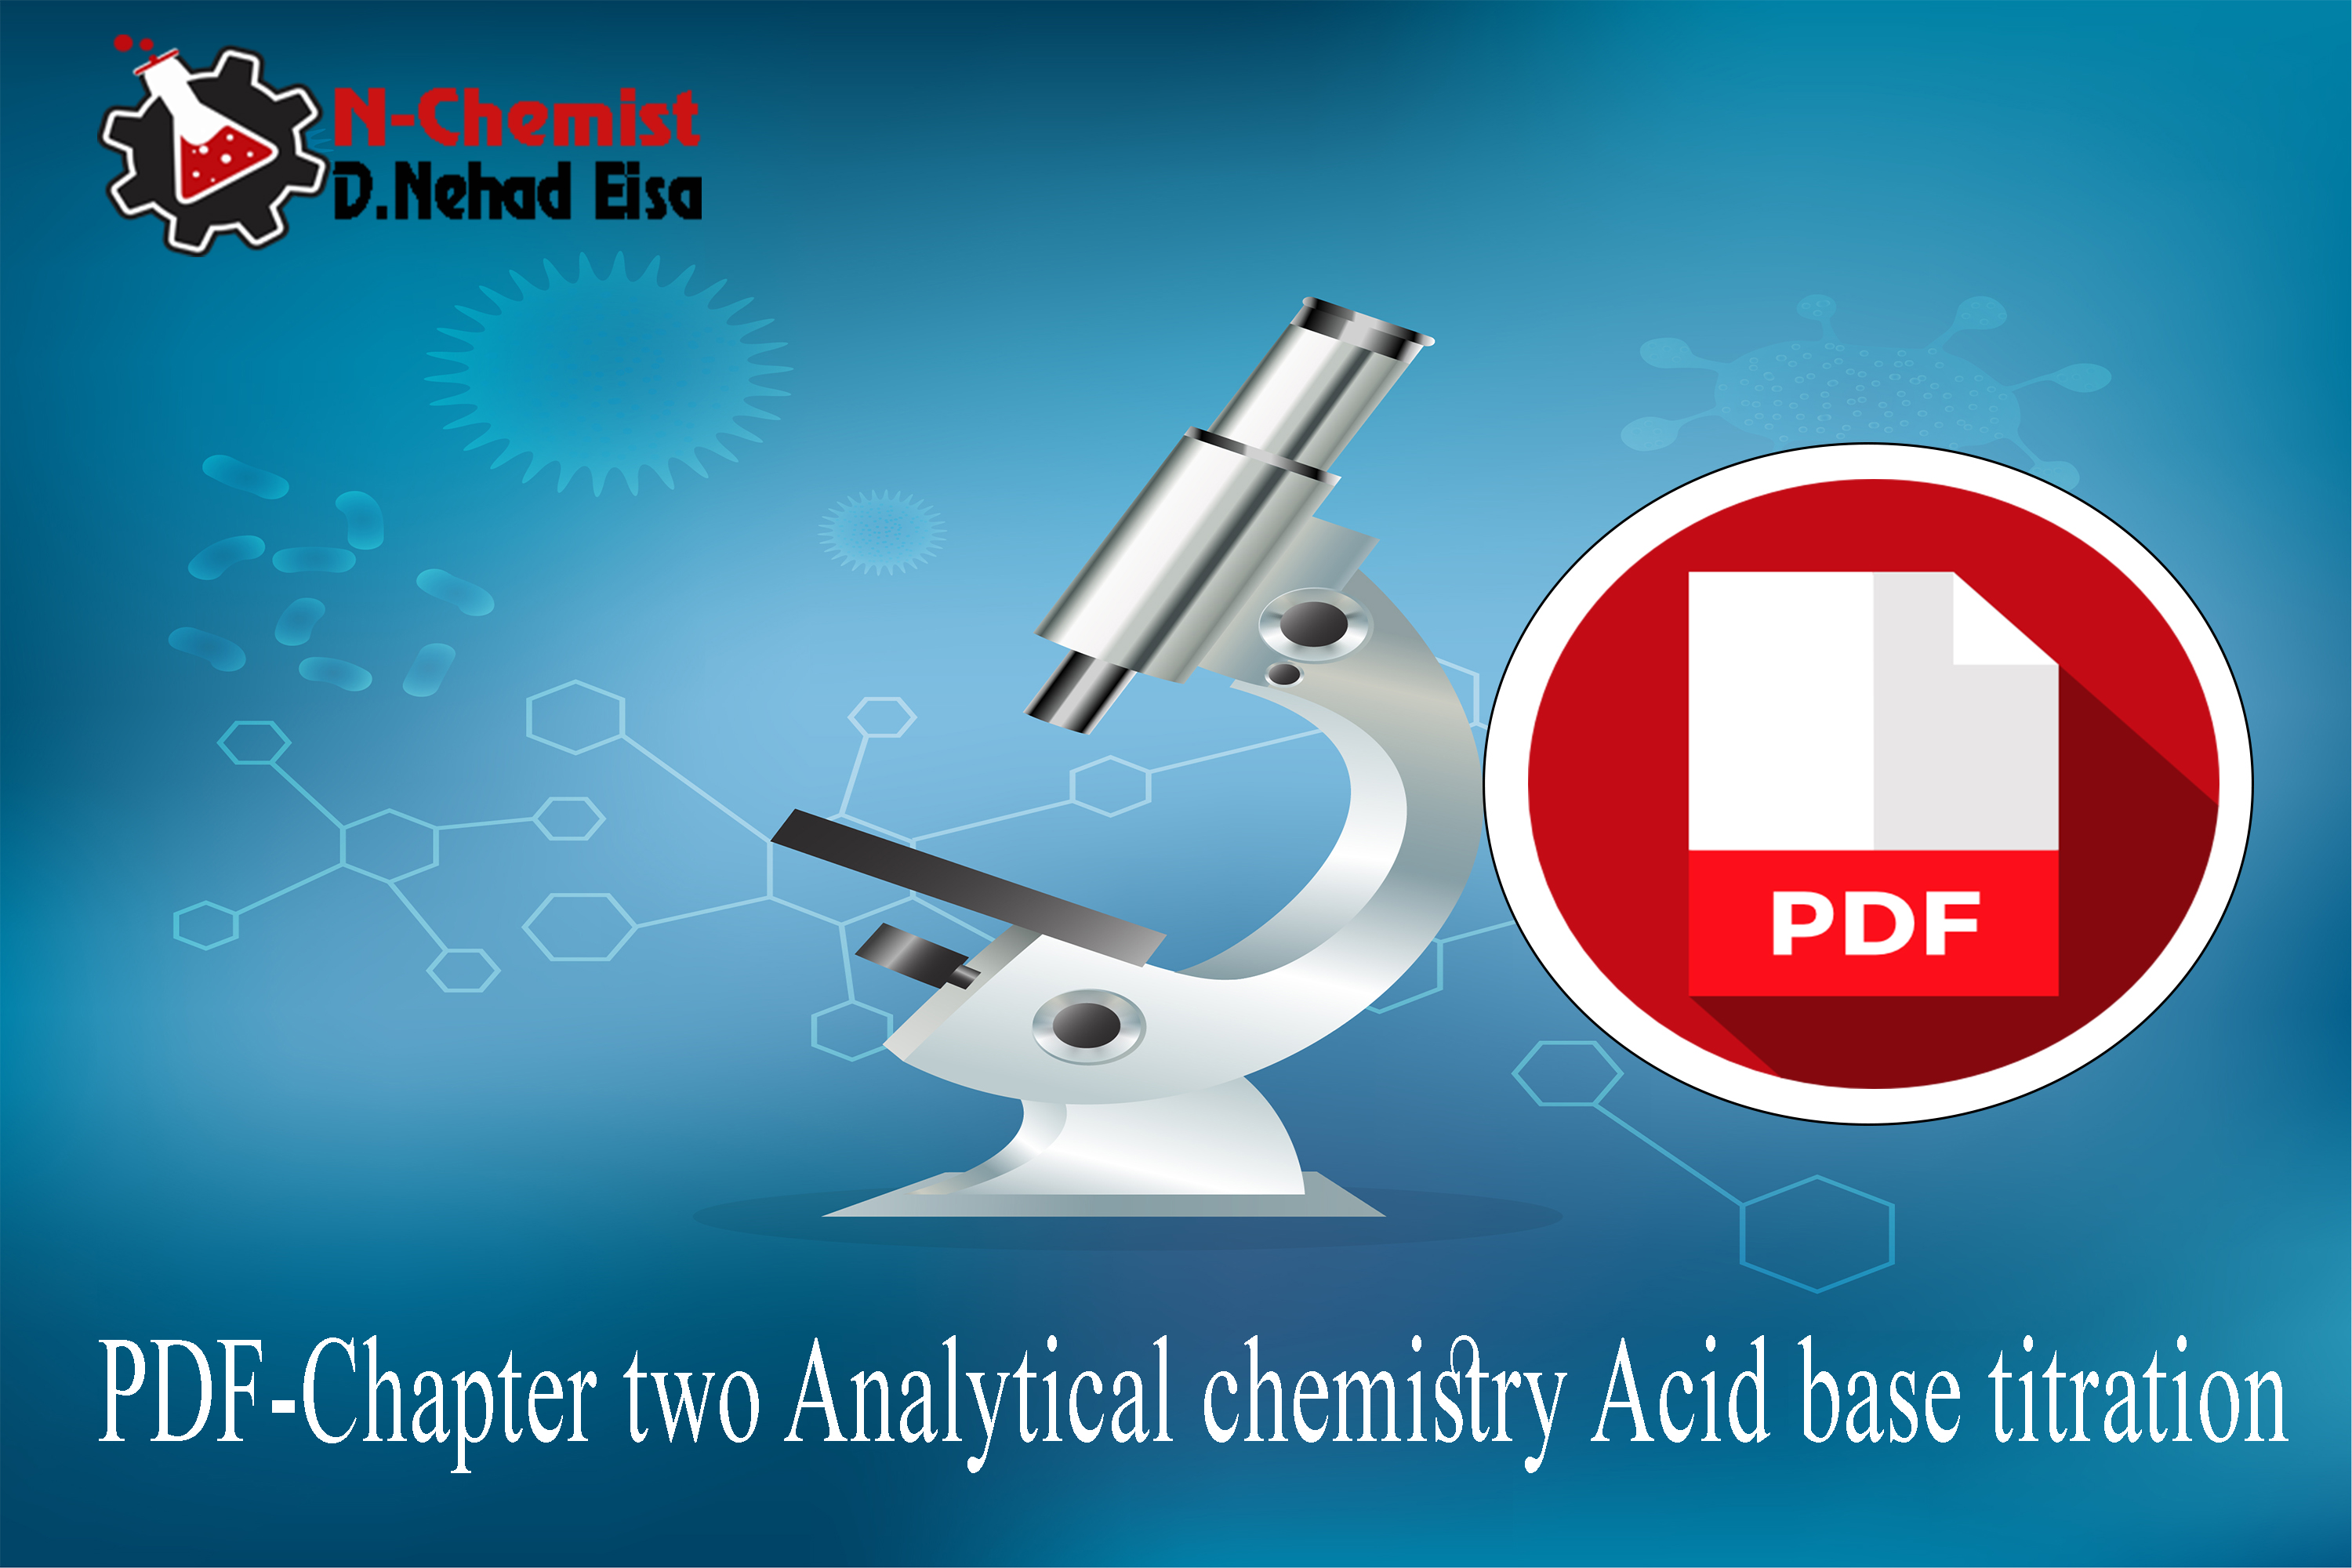 PDF-Chapter two Analytical chemistry Acid base titration